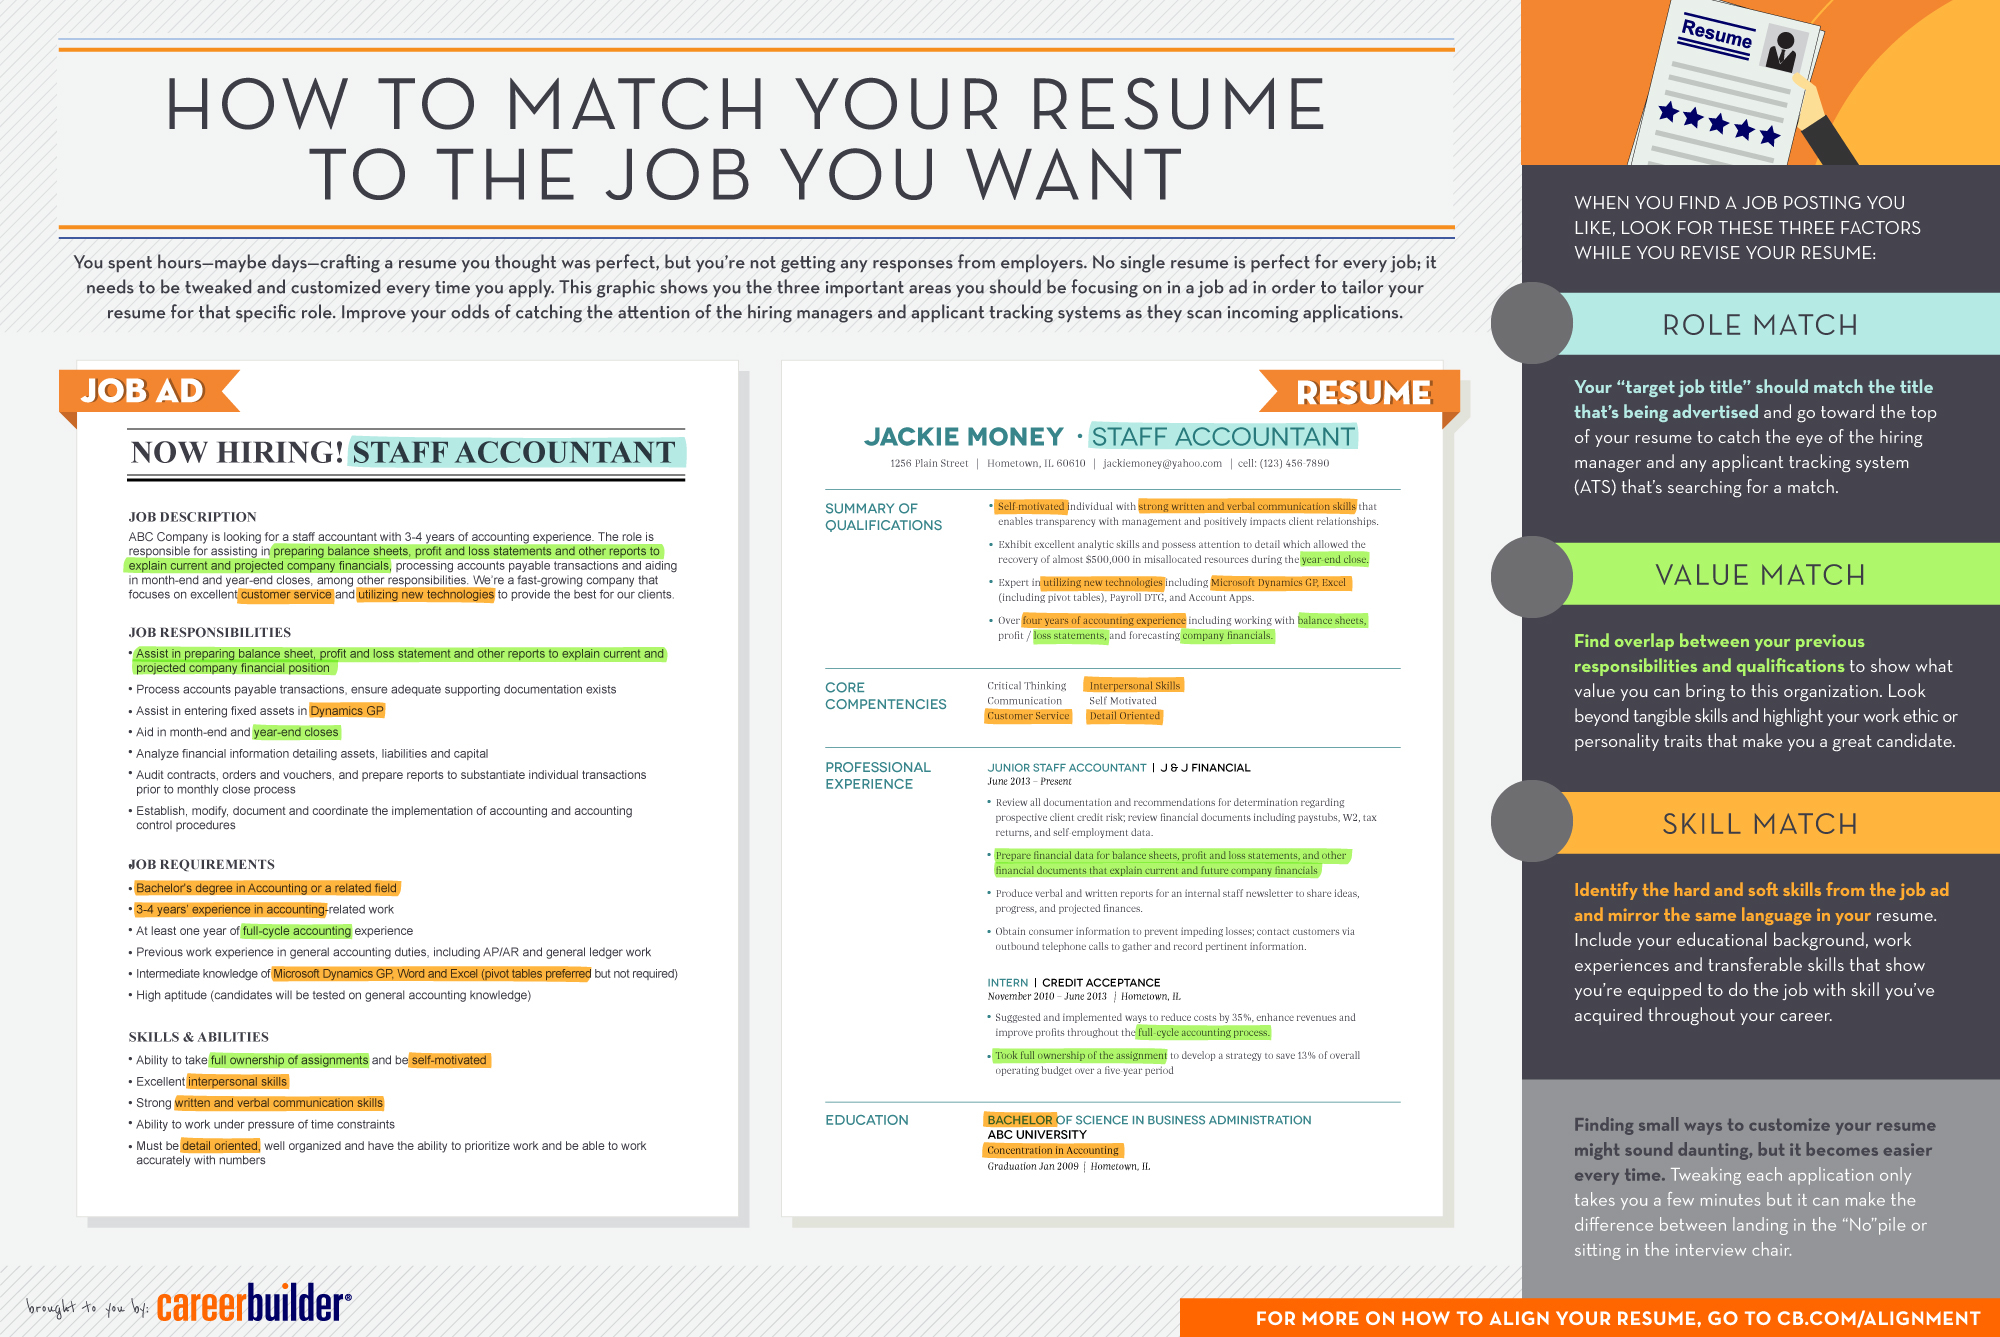 Infographic Matching Your Resume to the Job You Want AOL Finance